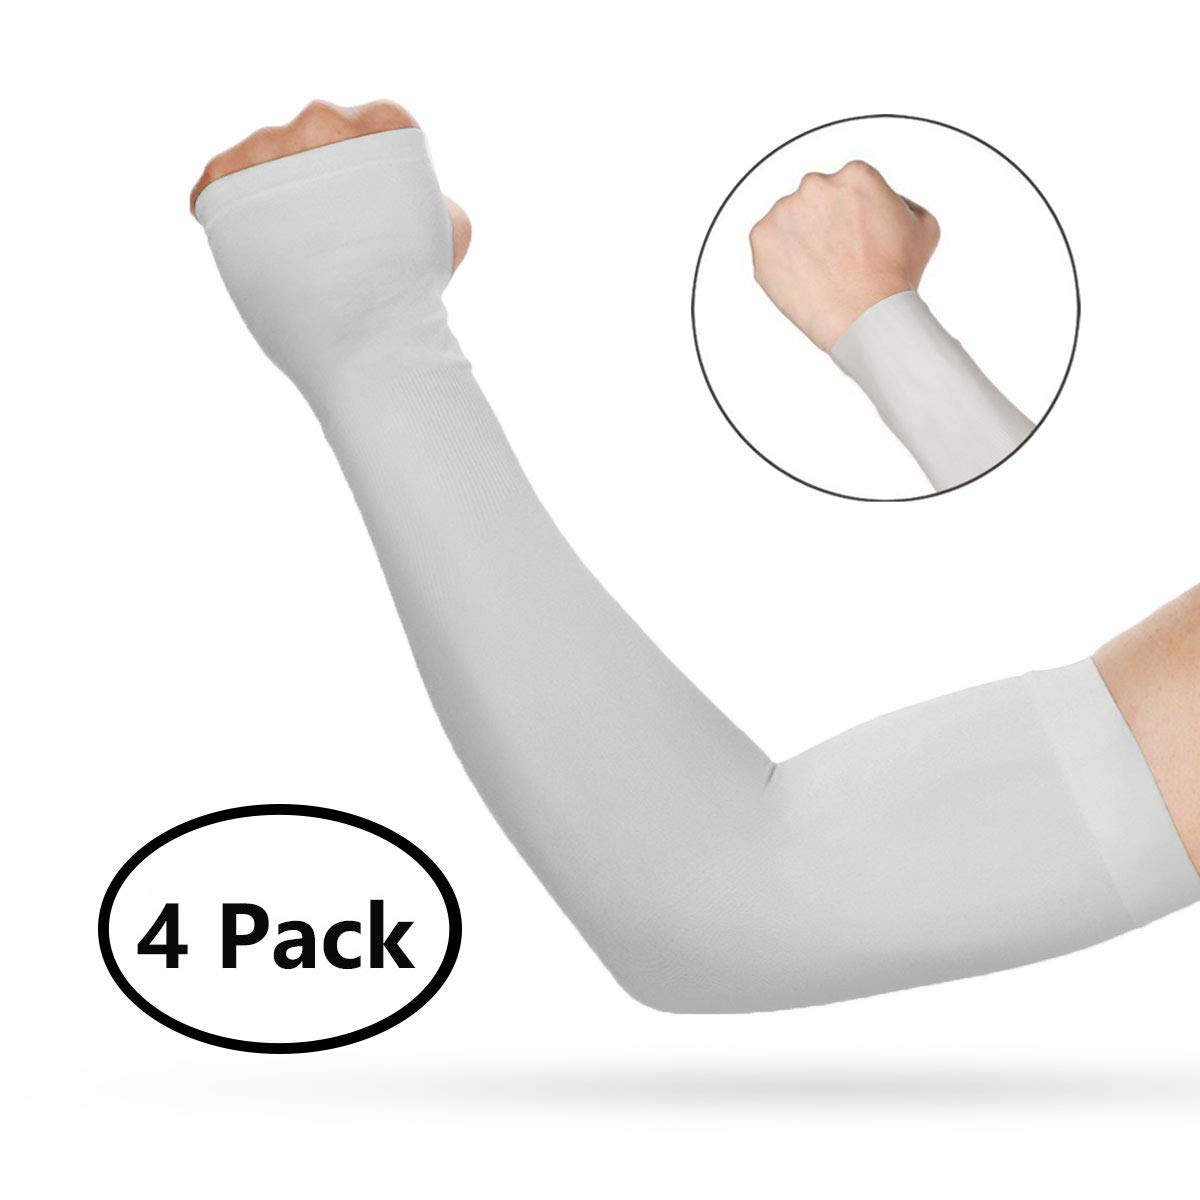 Compression Sports Arm Sleeve 99% UV Protection for Golf Weight Training Basketball Cycling Pain Injury Recovery, Helps protect arms from abrasions blisters and chaffing B (2 Pairs)